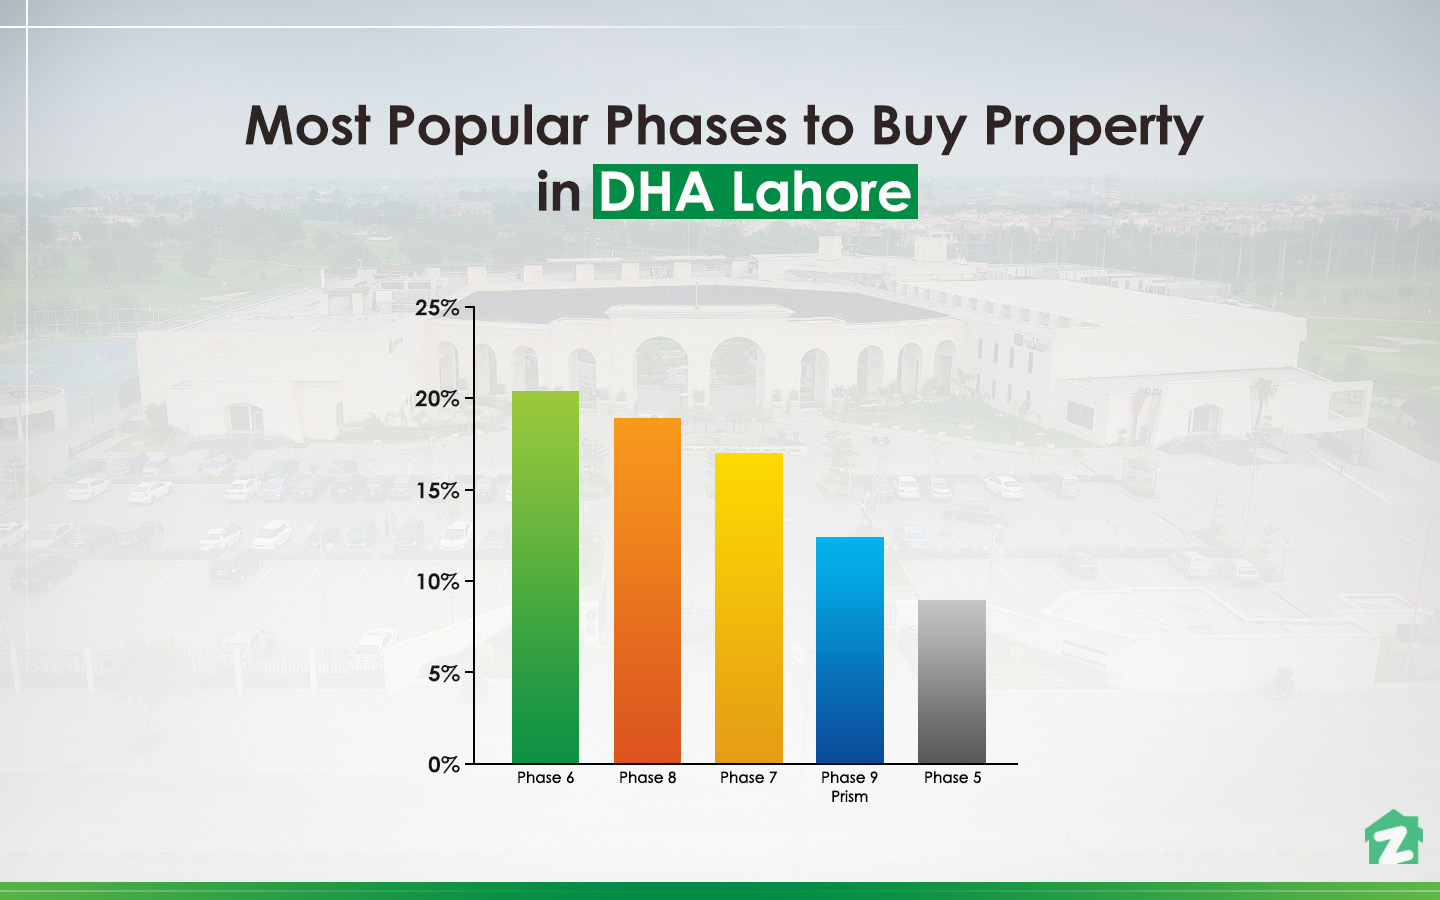 top phases in DHA Lahore for buying properties